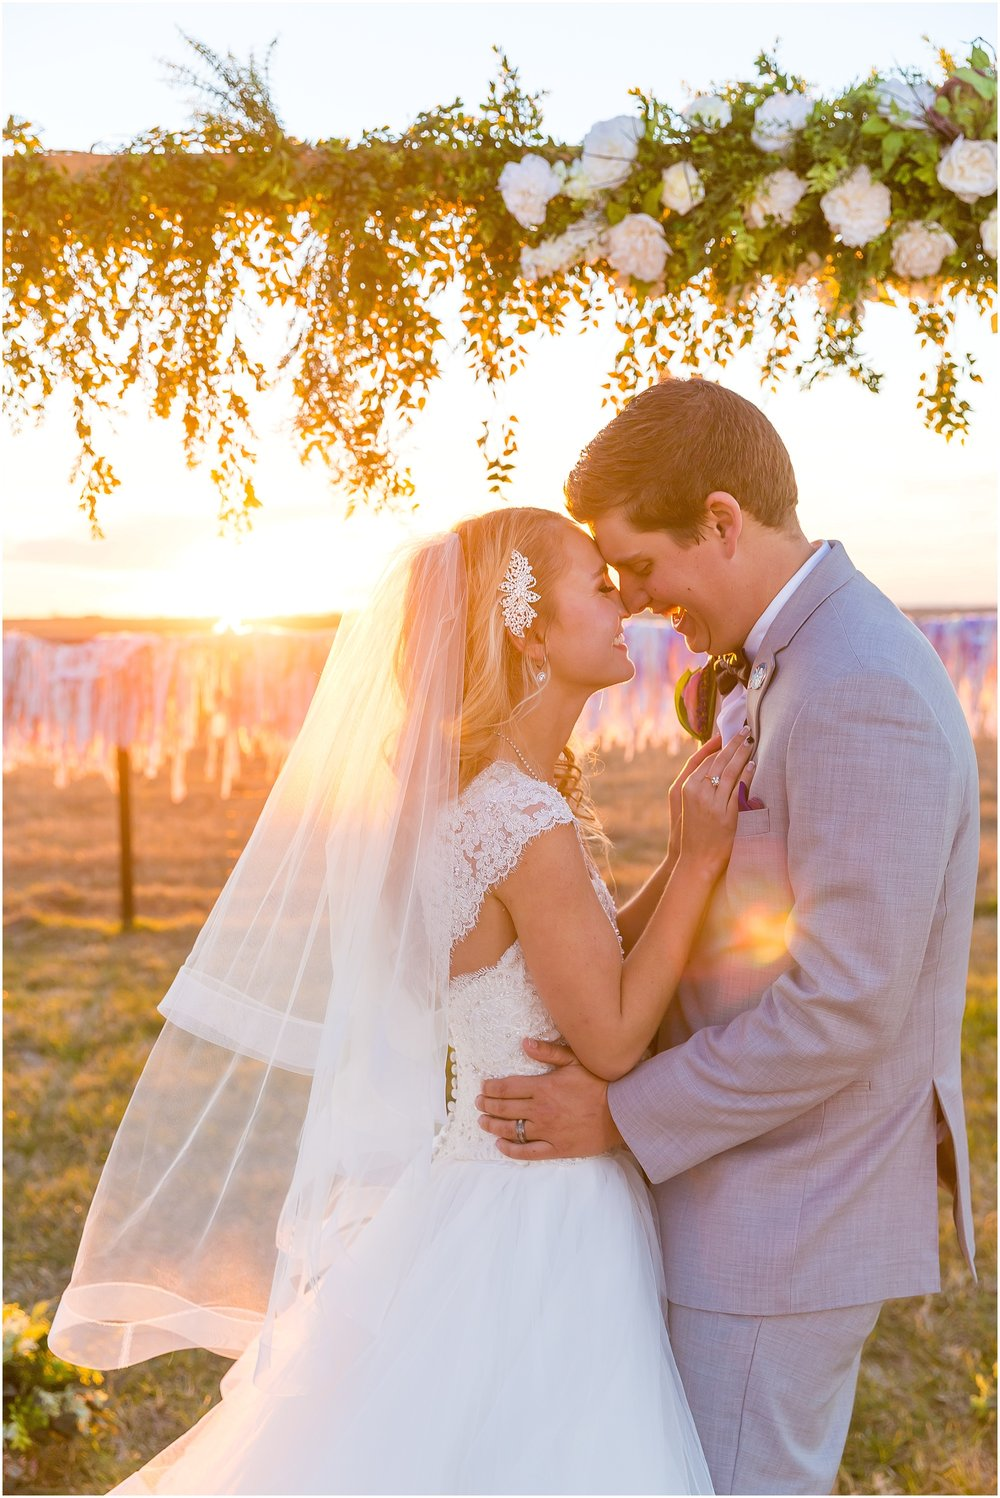 Bride and groom laugh together in the sunset light of golden hour - Jason & Melaina Photography - www.jasonandmelaina.com